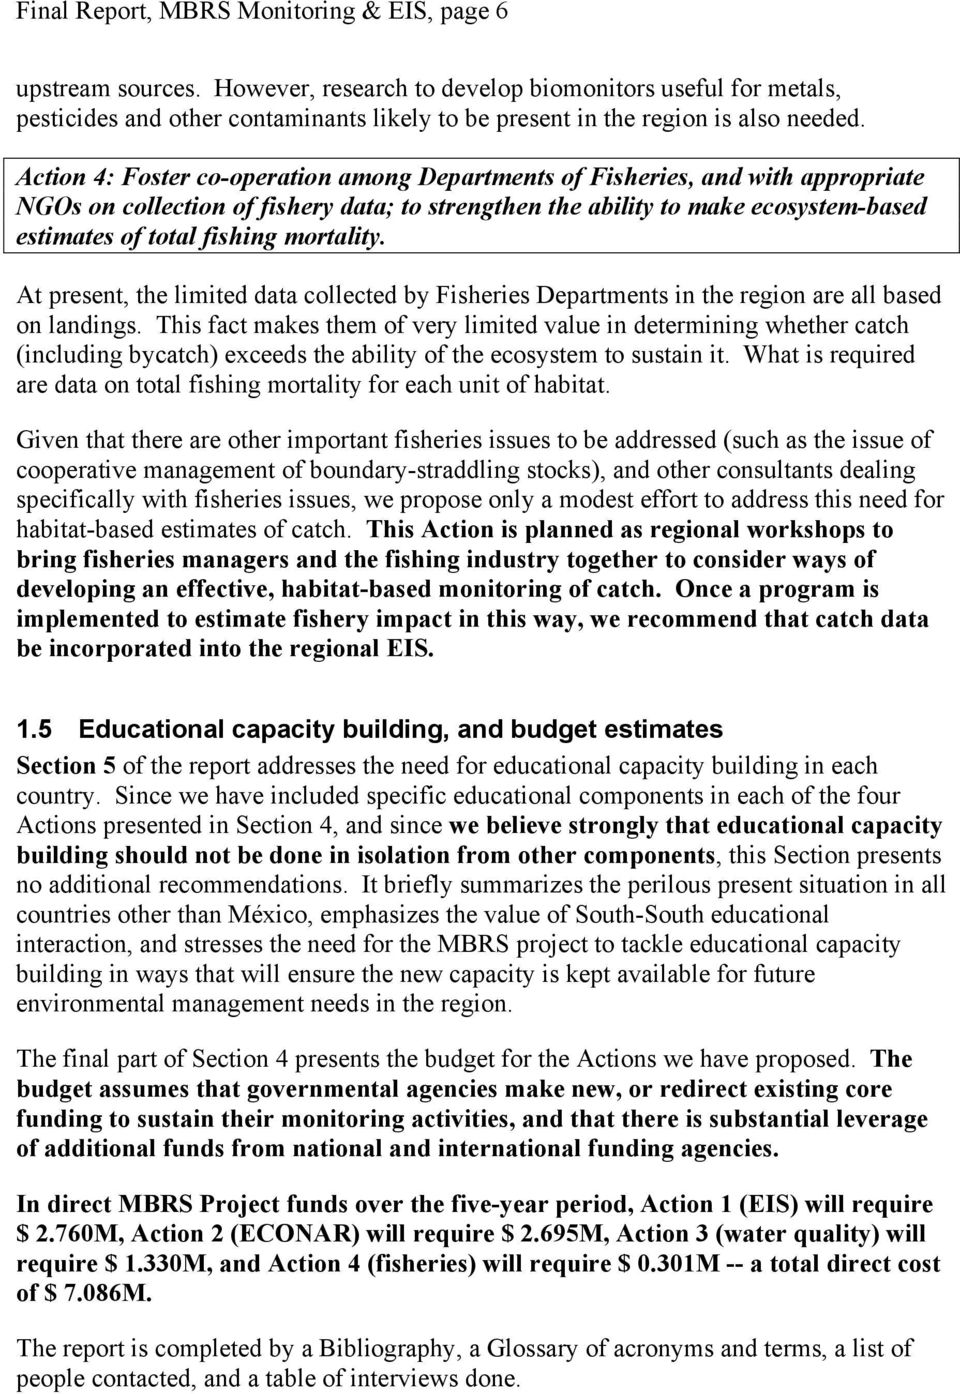 Action 4: Foster co-operation among Departments of Fisheries, and with appropriate NGOs on collection of fishery data; to strengthen the ability to make ecosystem-based estimates of total fishing